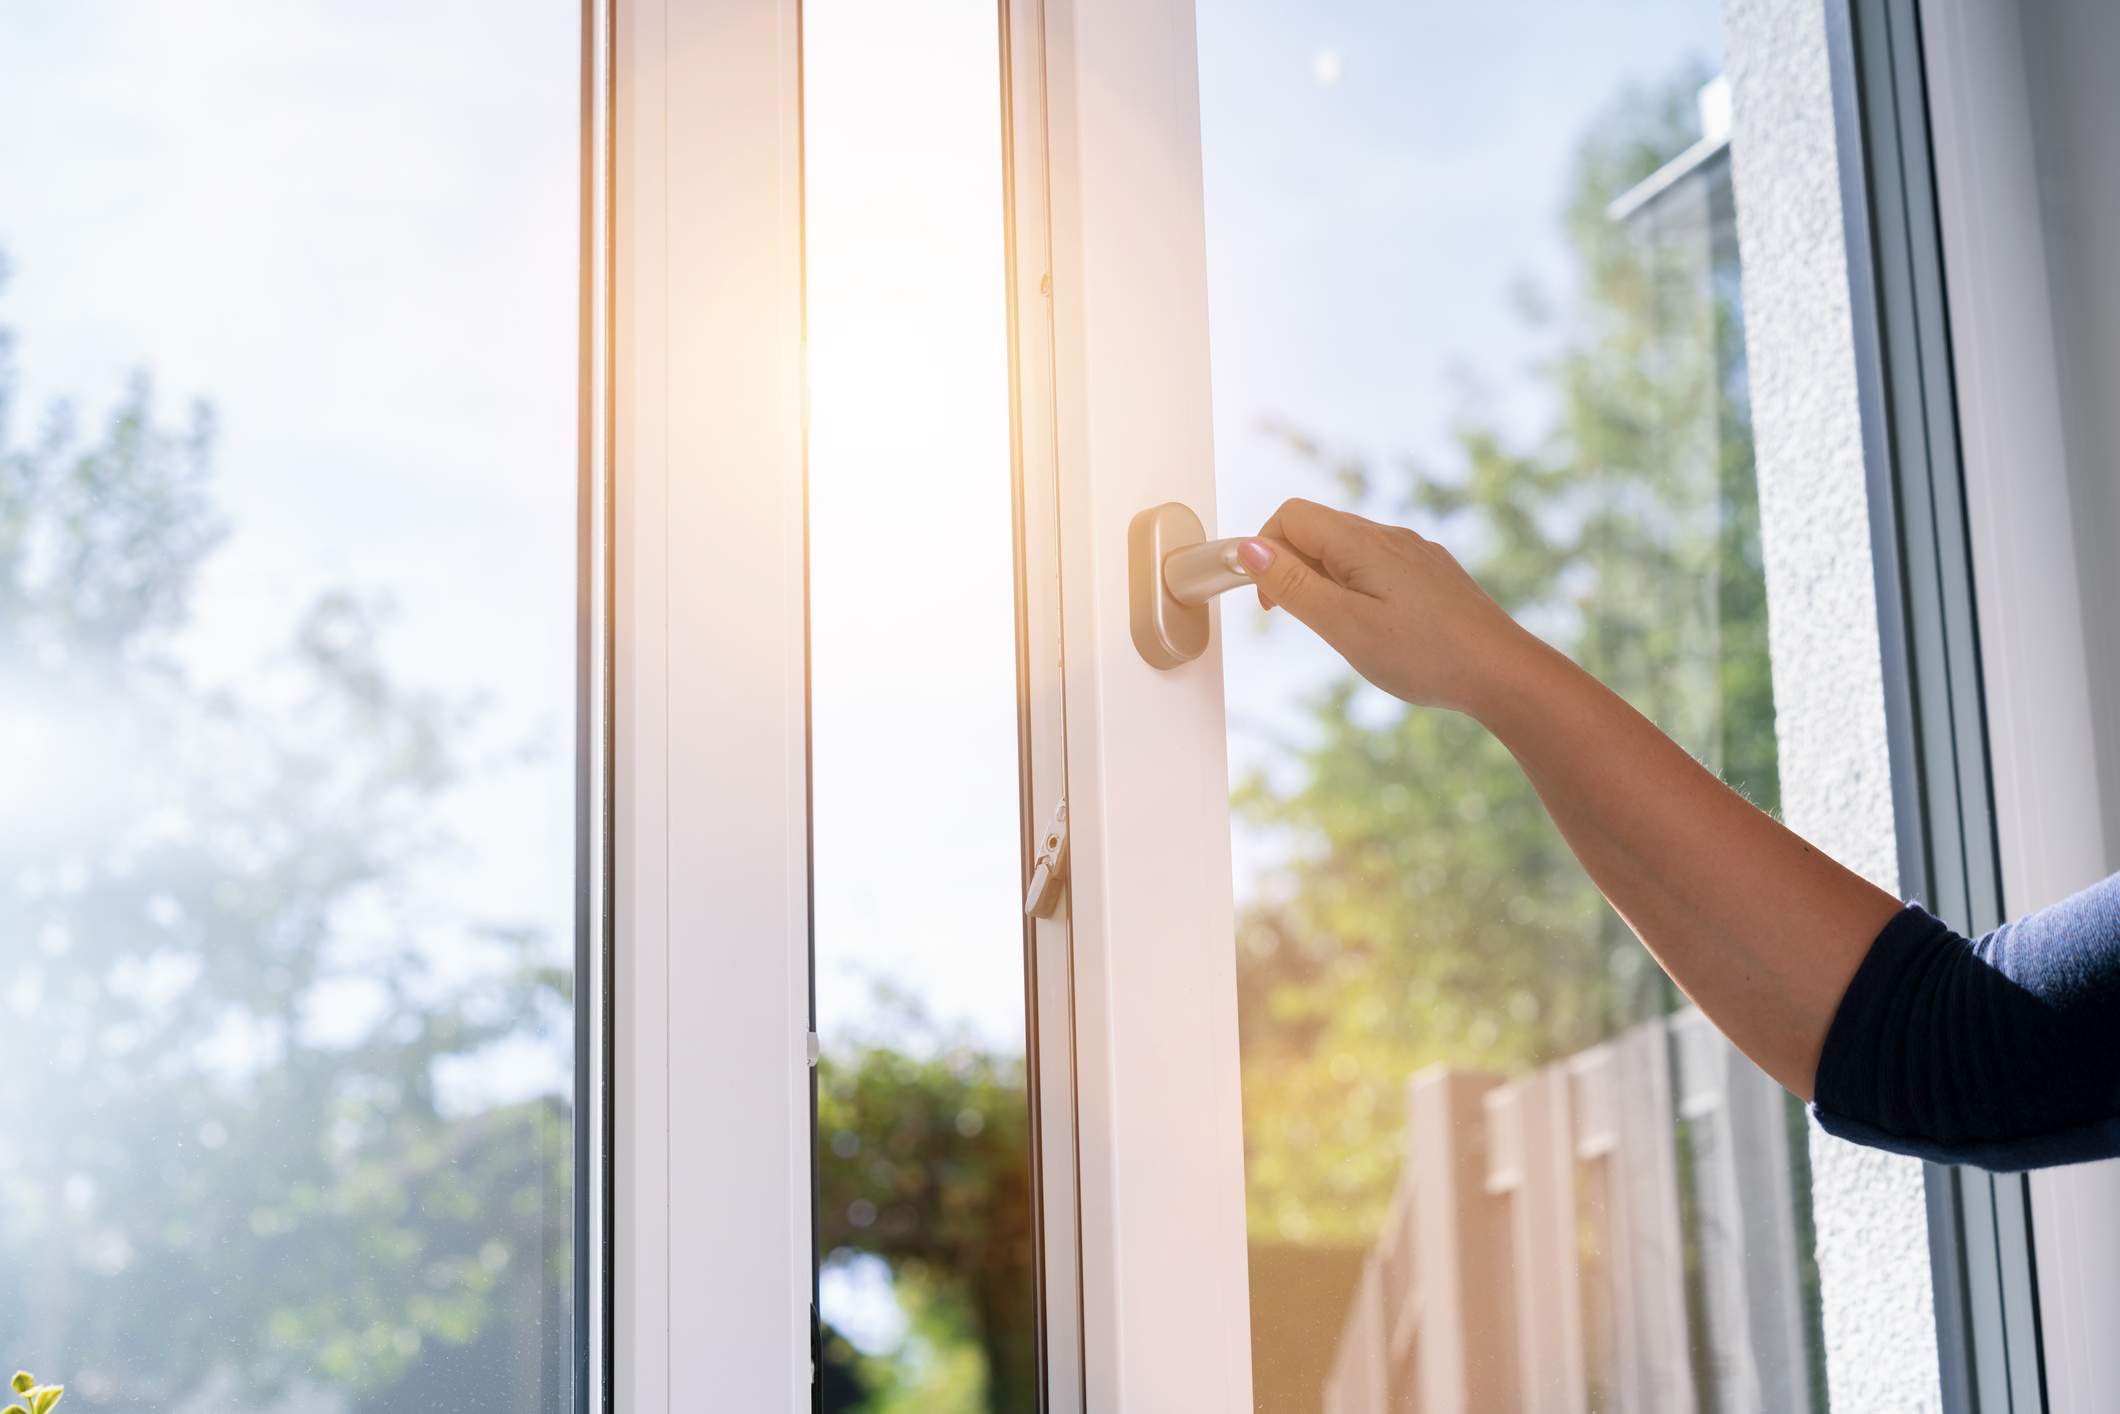 To lower your coronavirus risk at home, open your windows